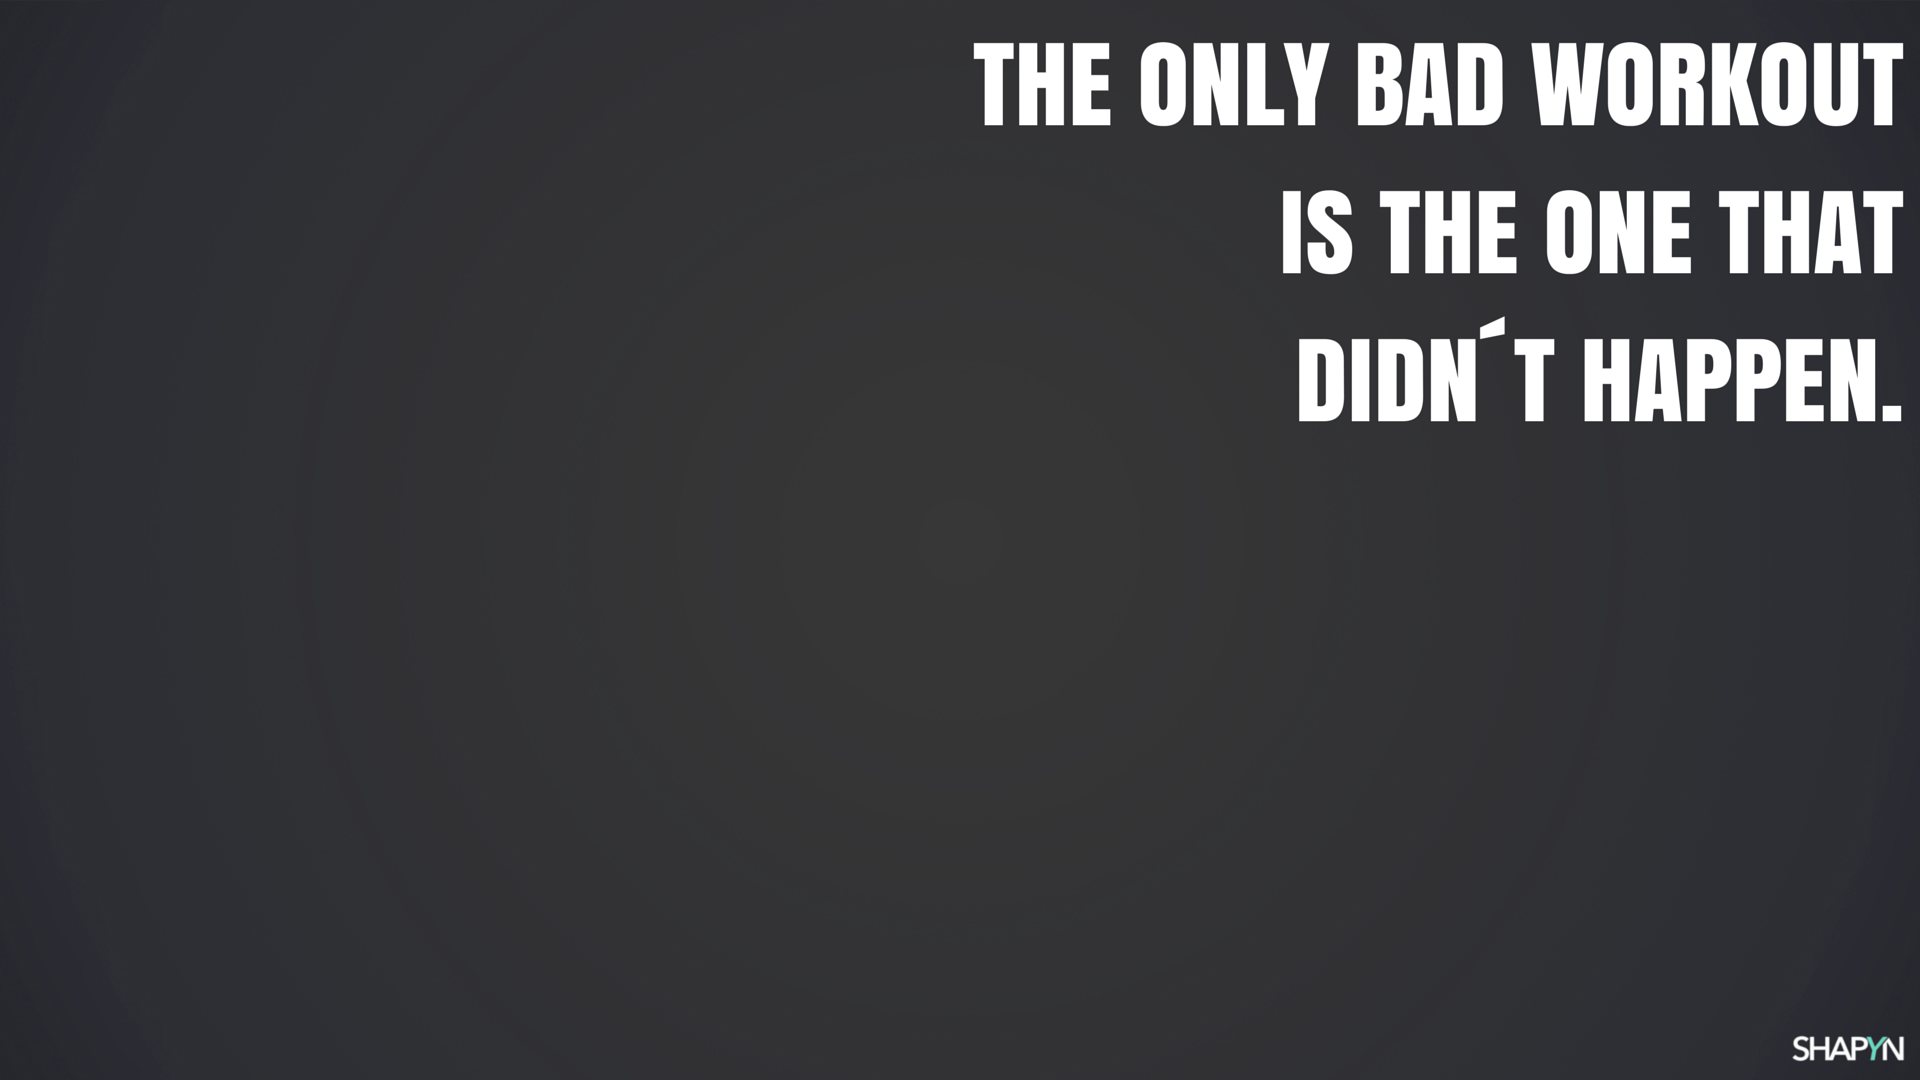 the only bad workout dunkel hd 1920 x 1080